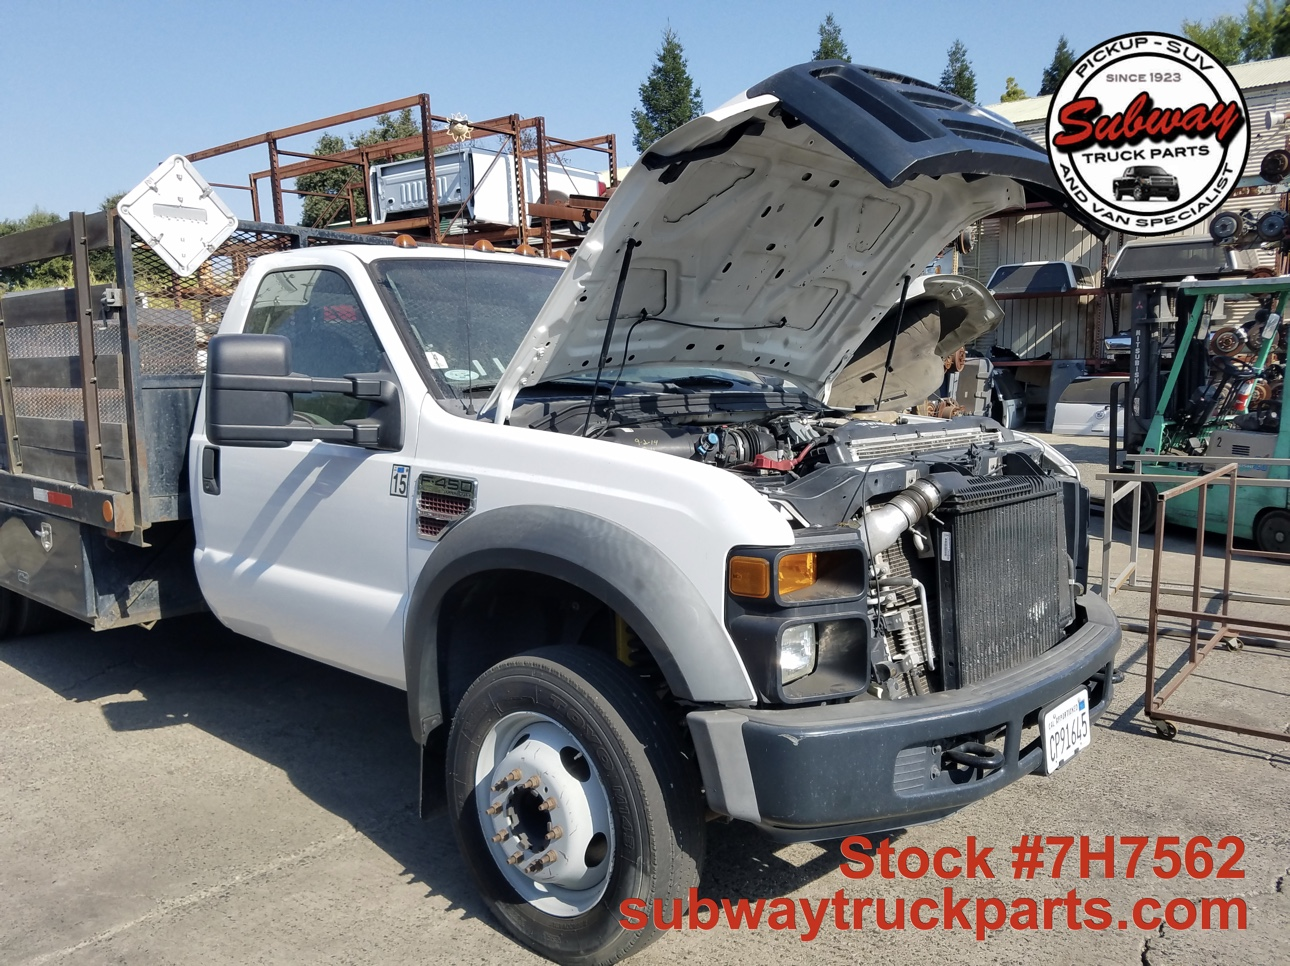 2017 Ford F .7 L V8 Diesel >> Used Parts 2008 Ford F450 XL Flatbed 6.4L 4x2 | Subway Truck Parts, Inc. | Auto Recycling Since 1923